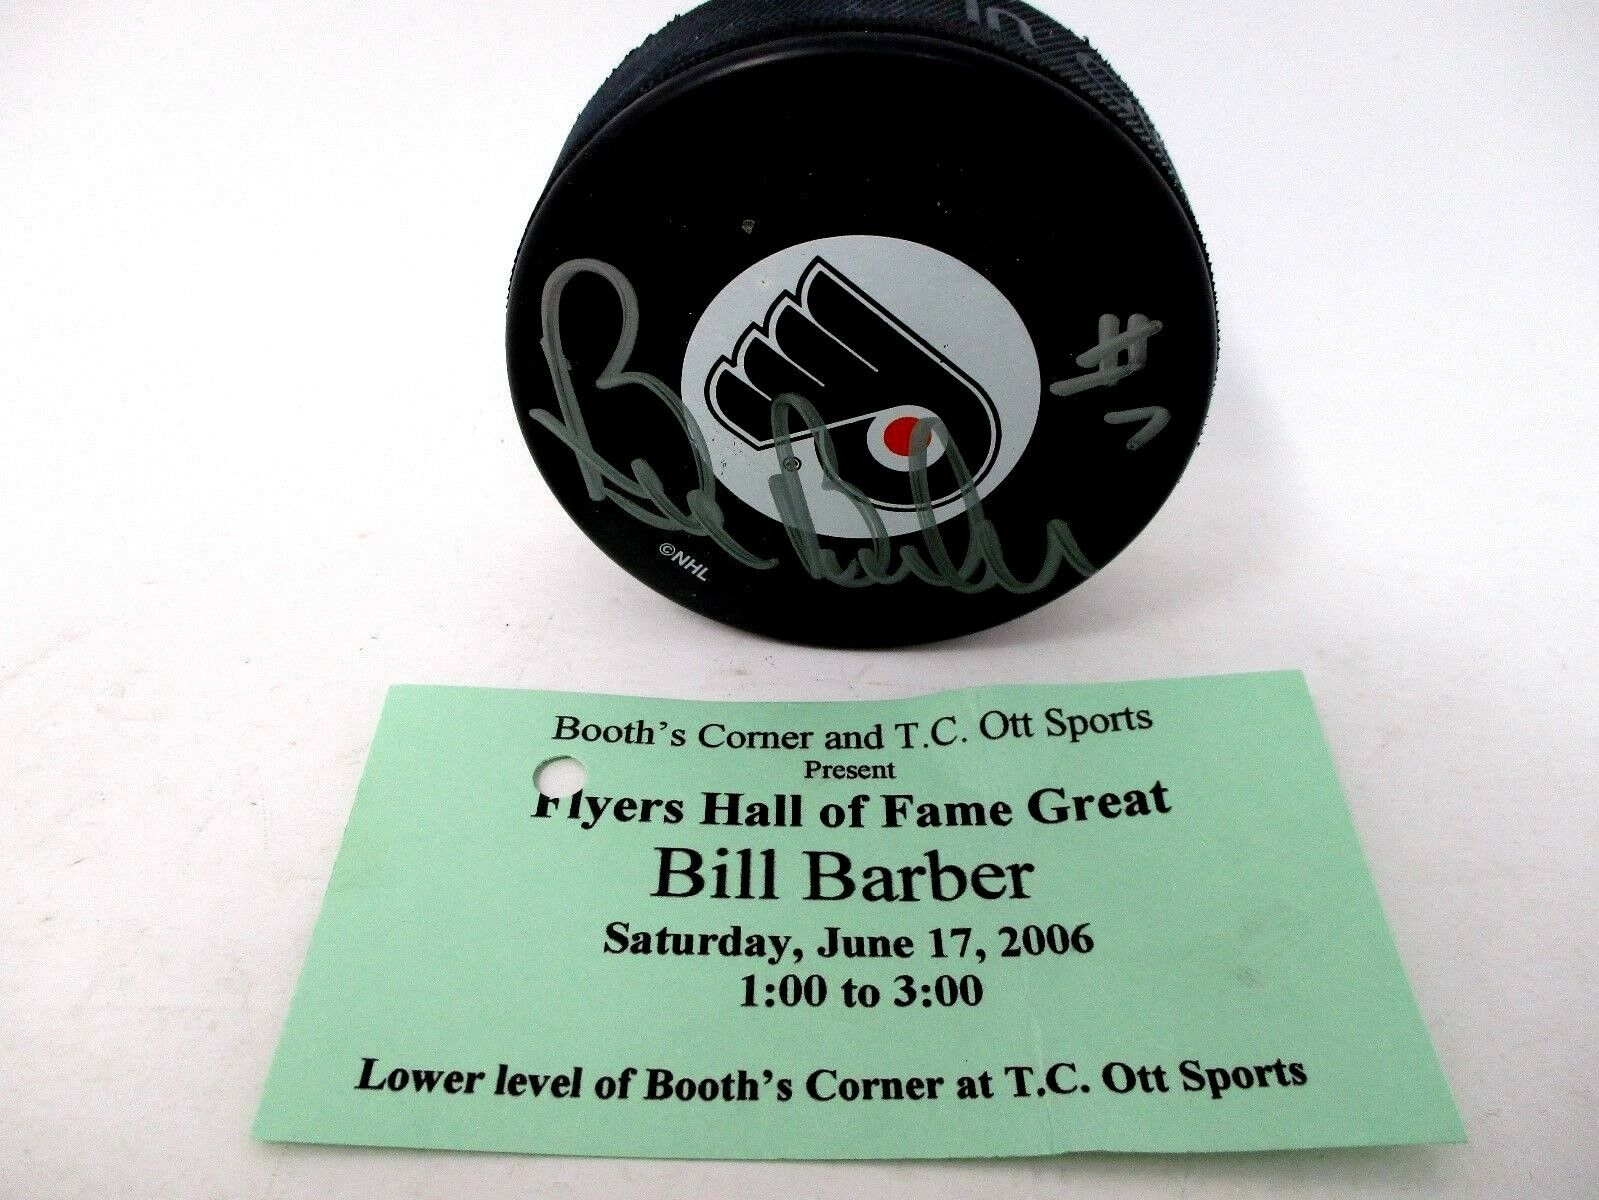 Bill Barber #7 Philadelphia Flyers Autographed Hockey Puck In Display Box